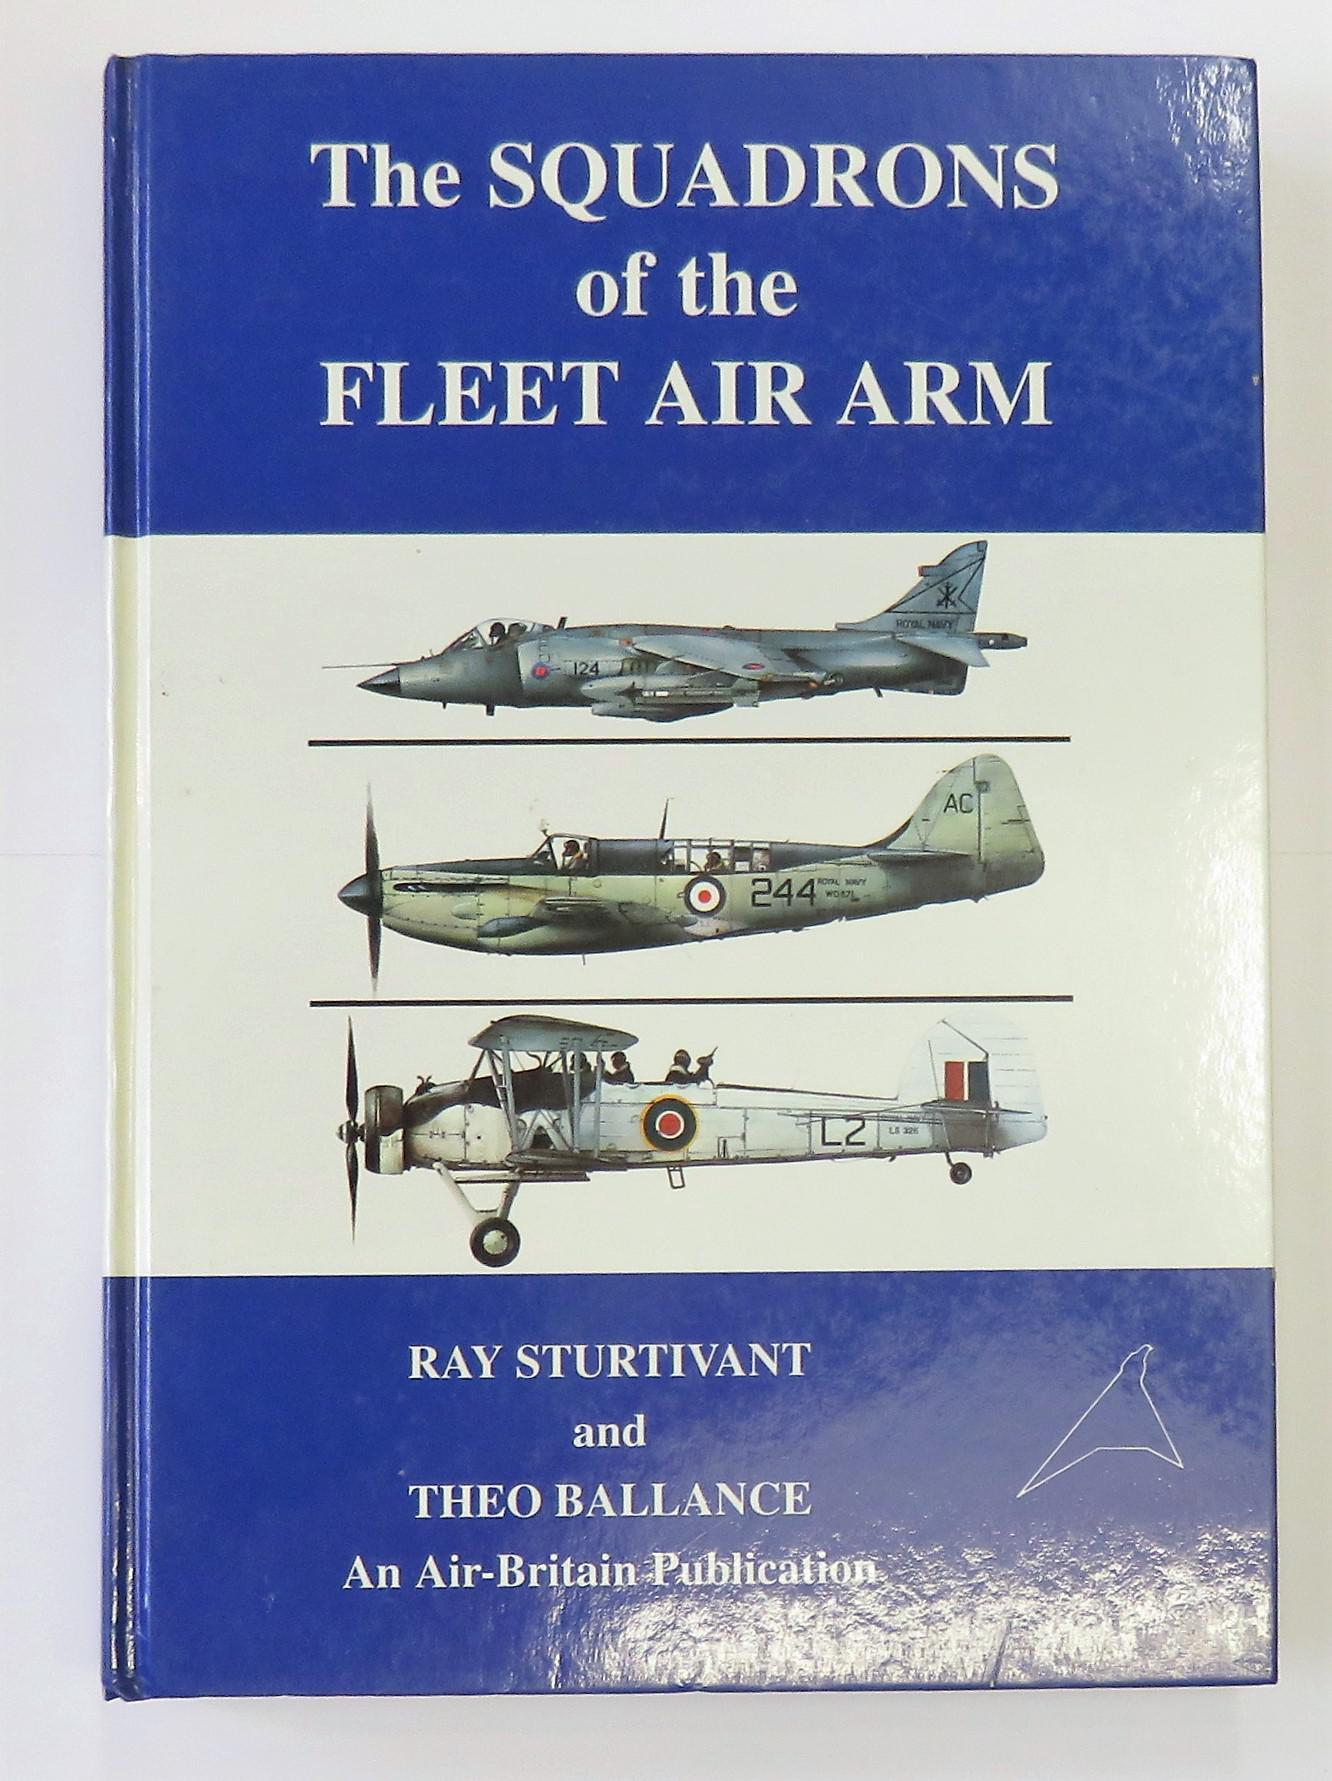 The Squadrons of the Fleet Air Arm